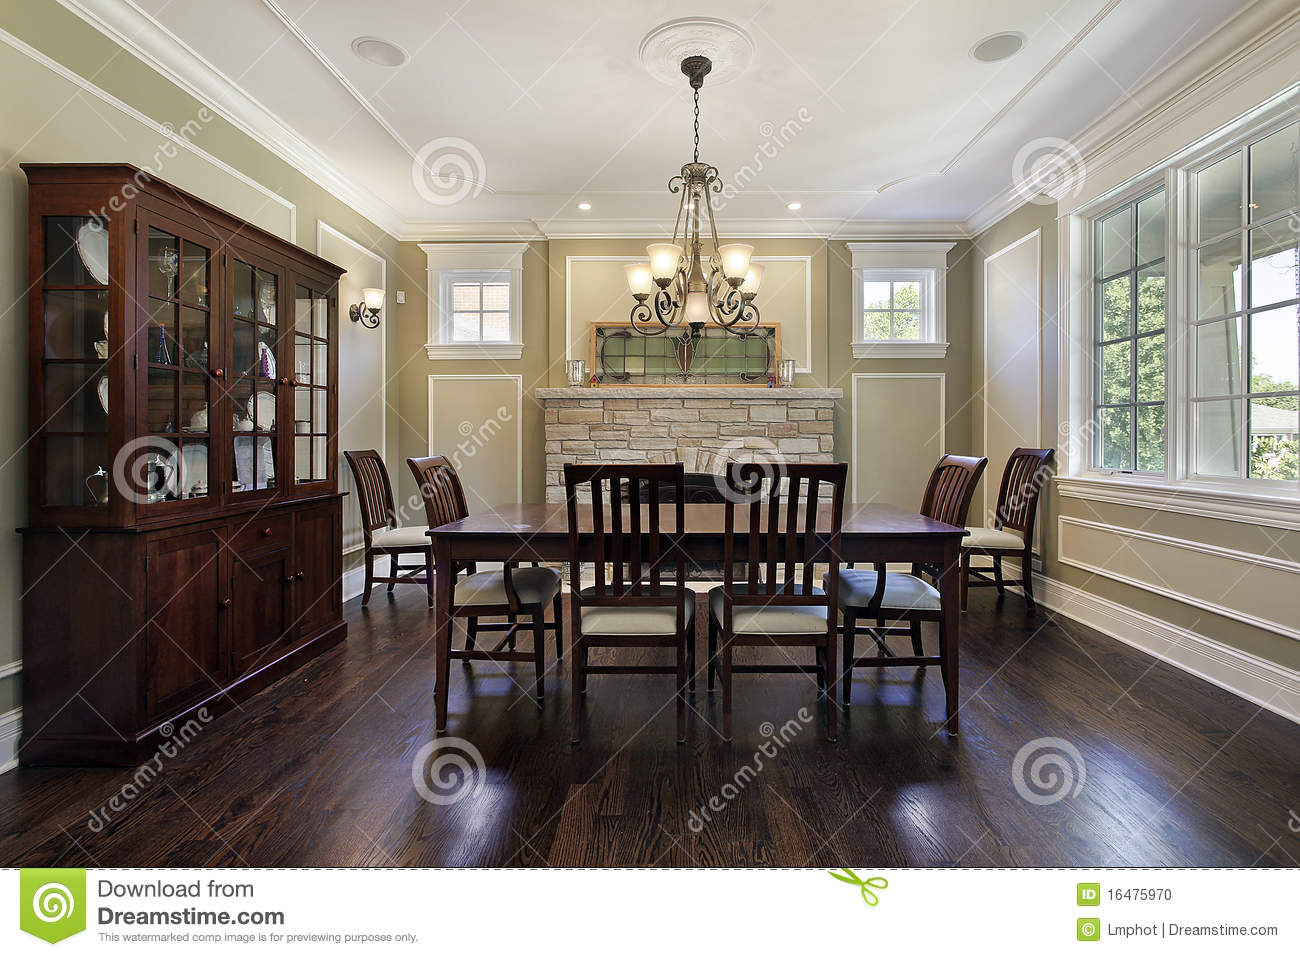 Dining room with stone fireplace stock photo image 16475970 for Dining room fireplace